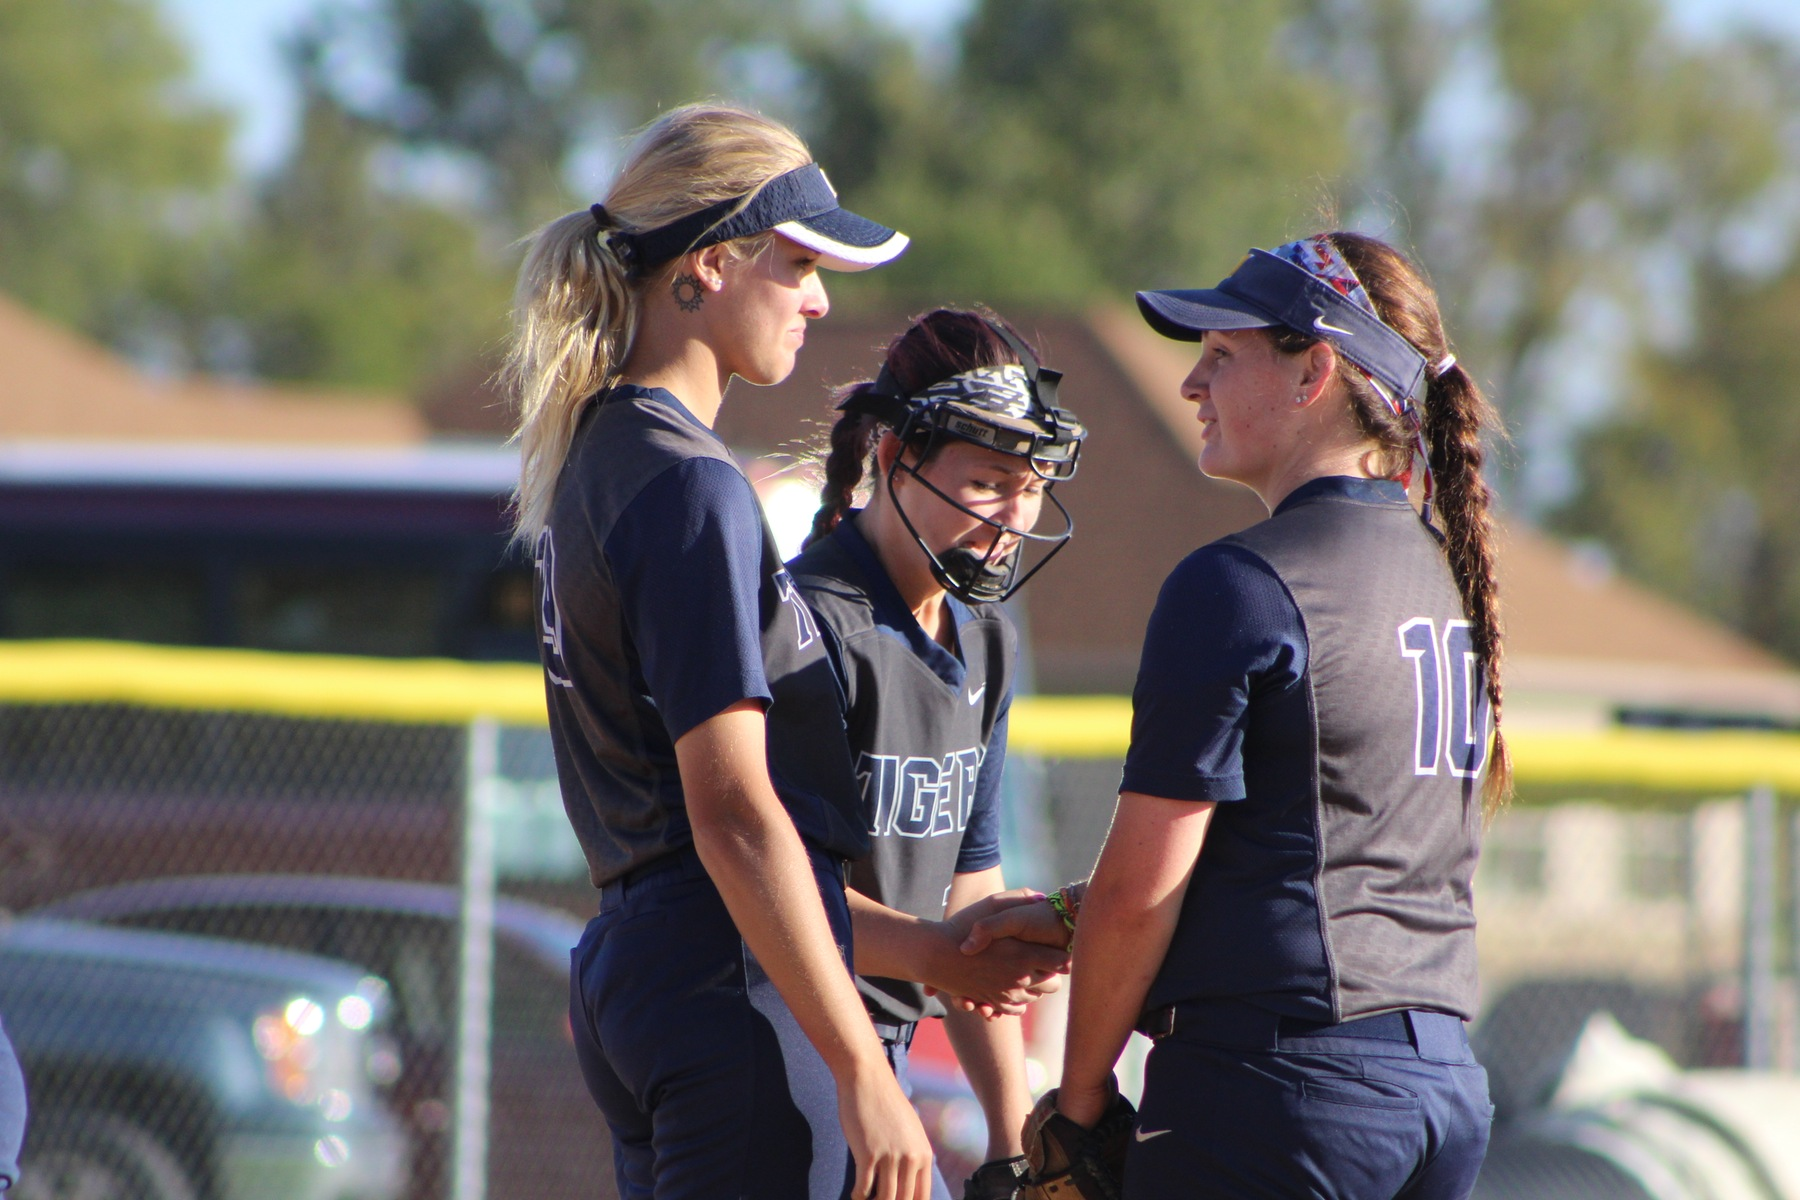 The MCC softball team split a pair of games in Clermont, FL on Friday